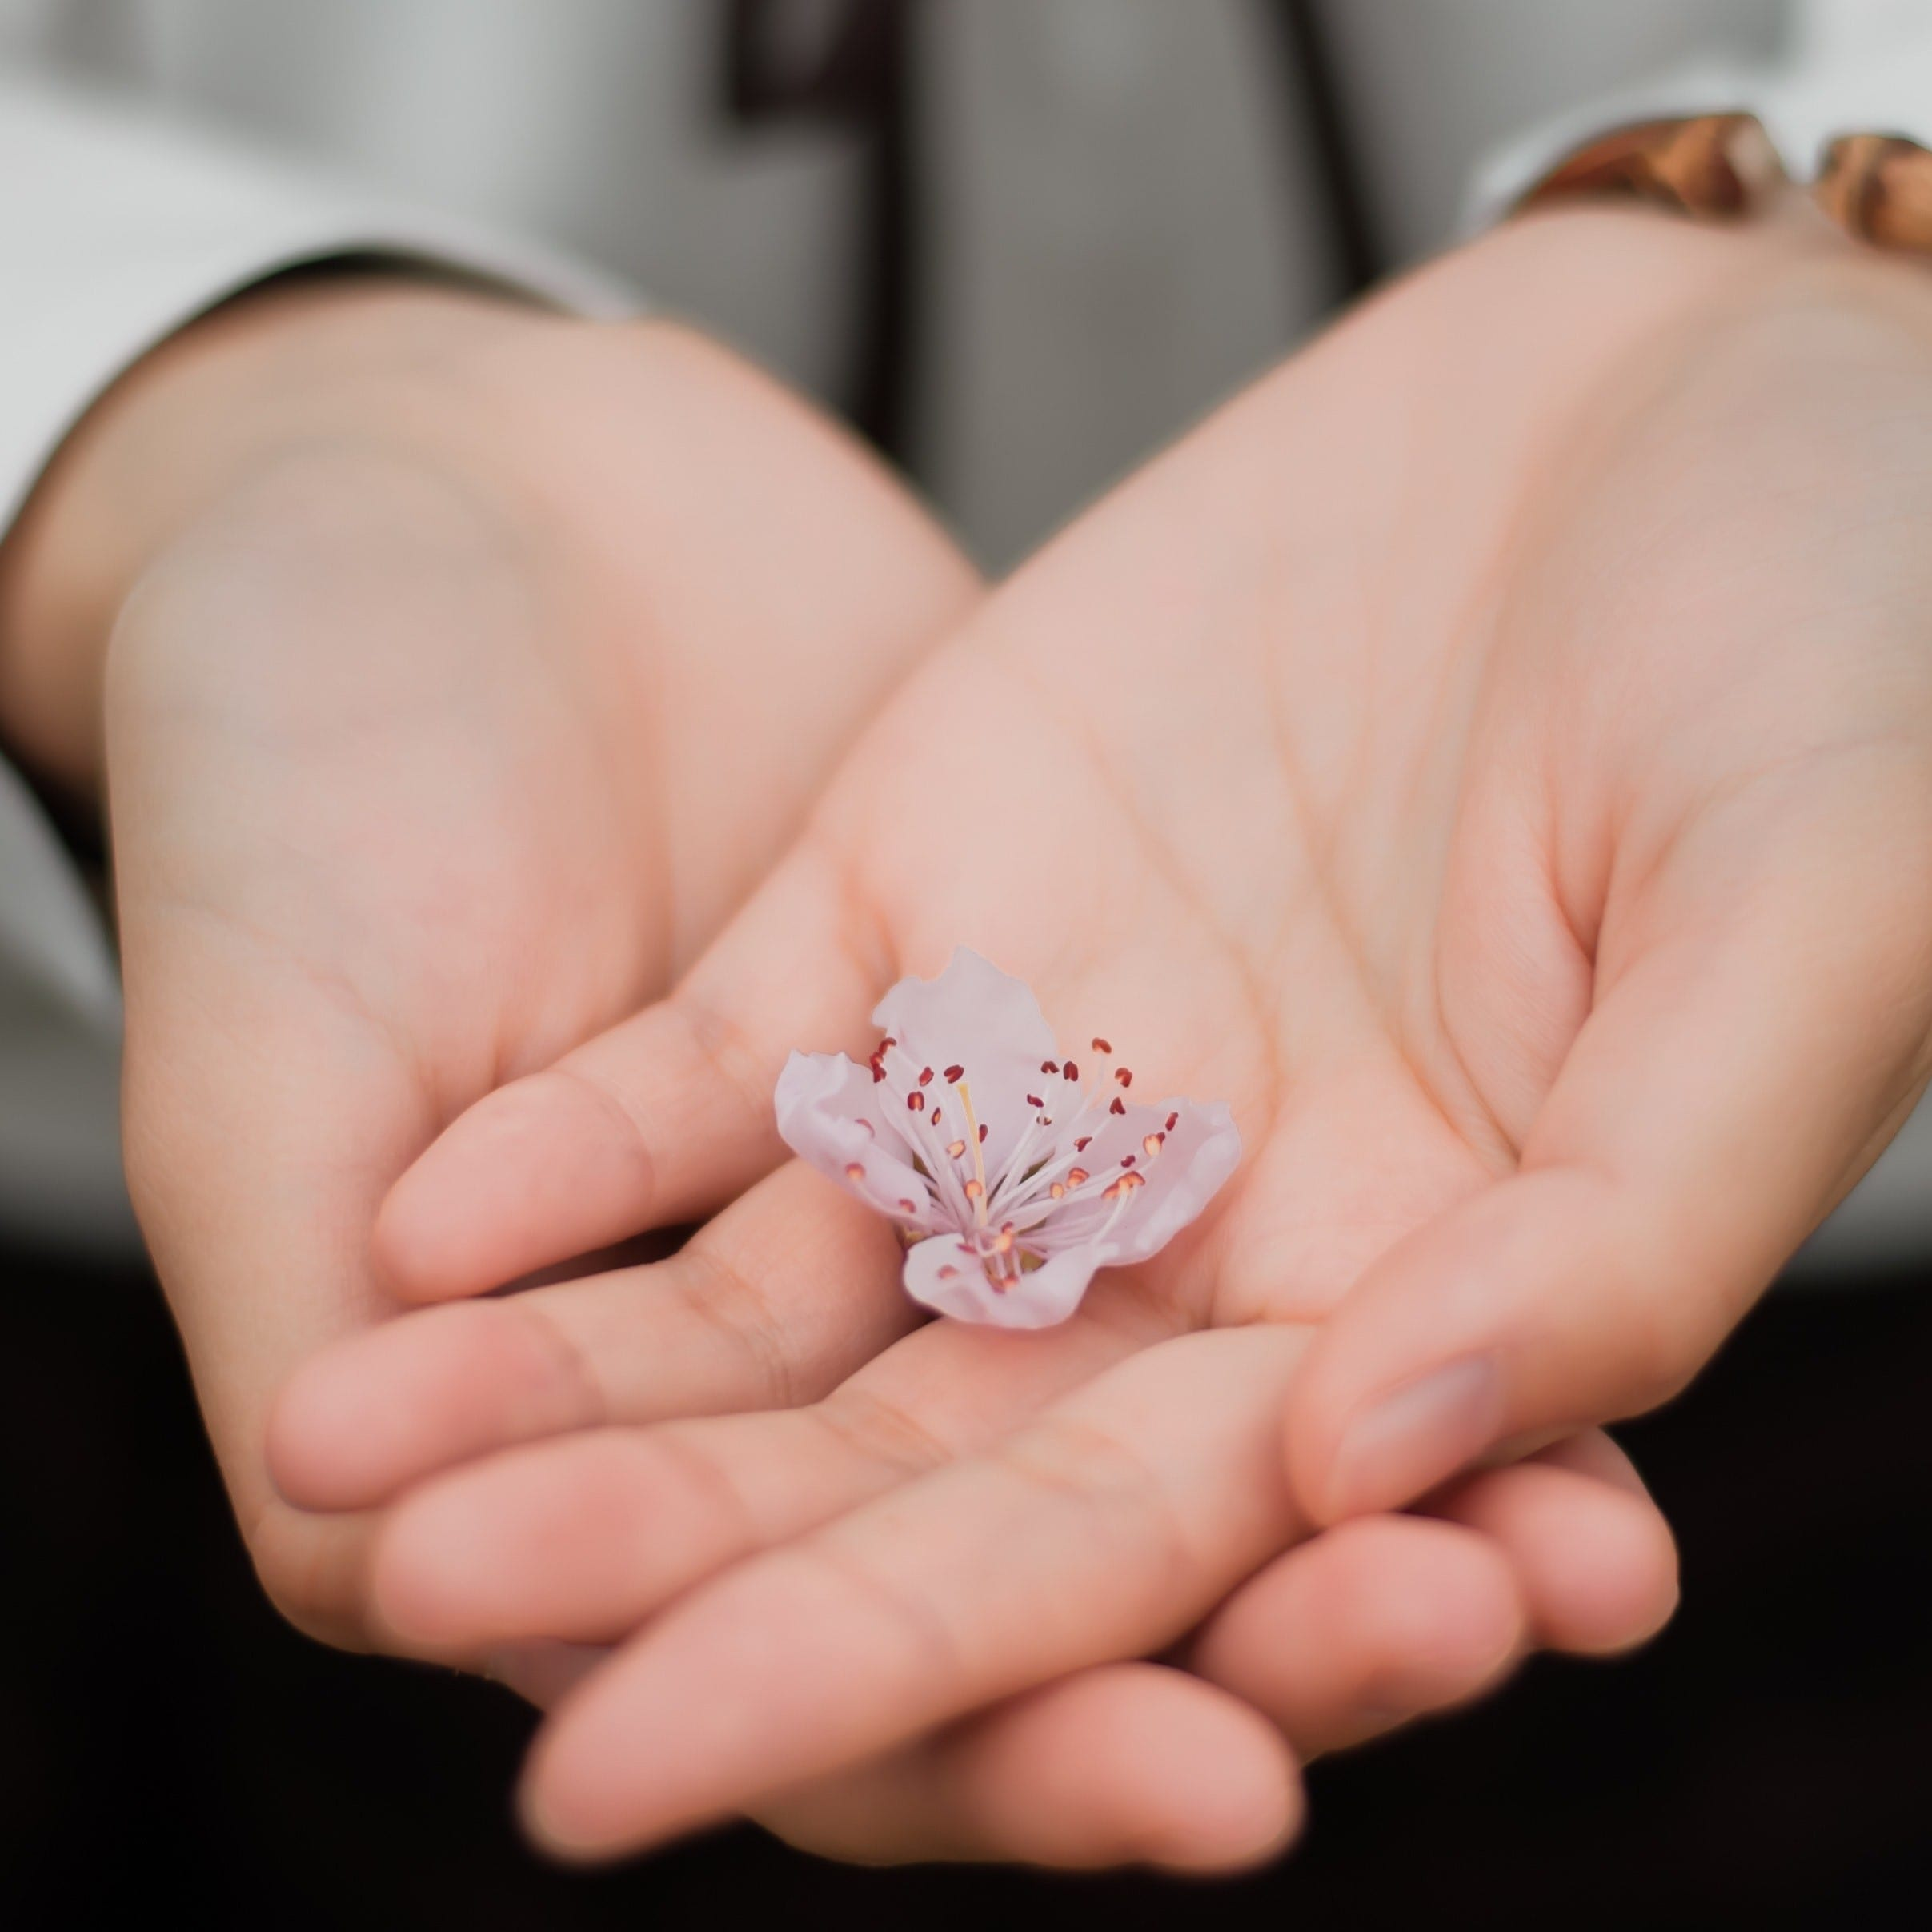 hands holding a small flower